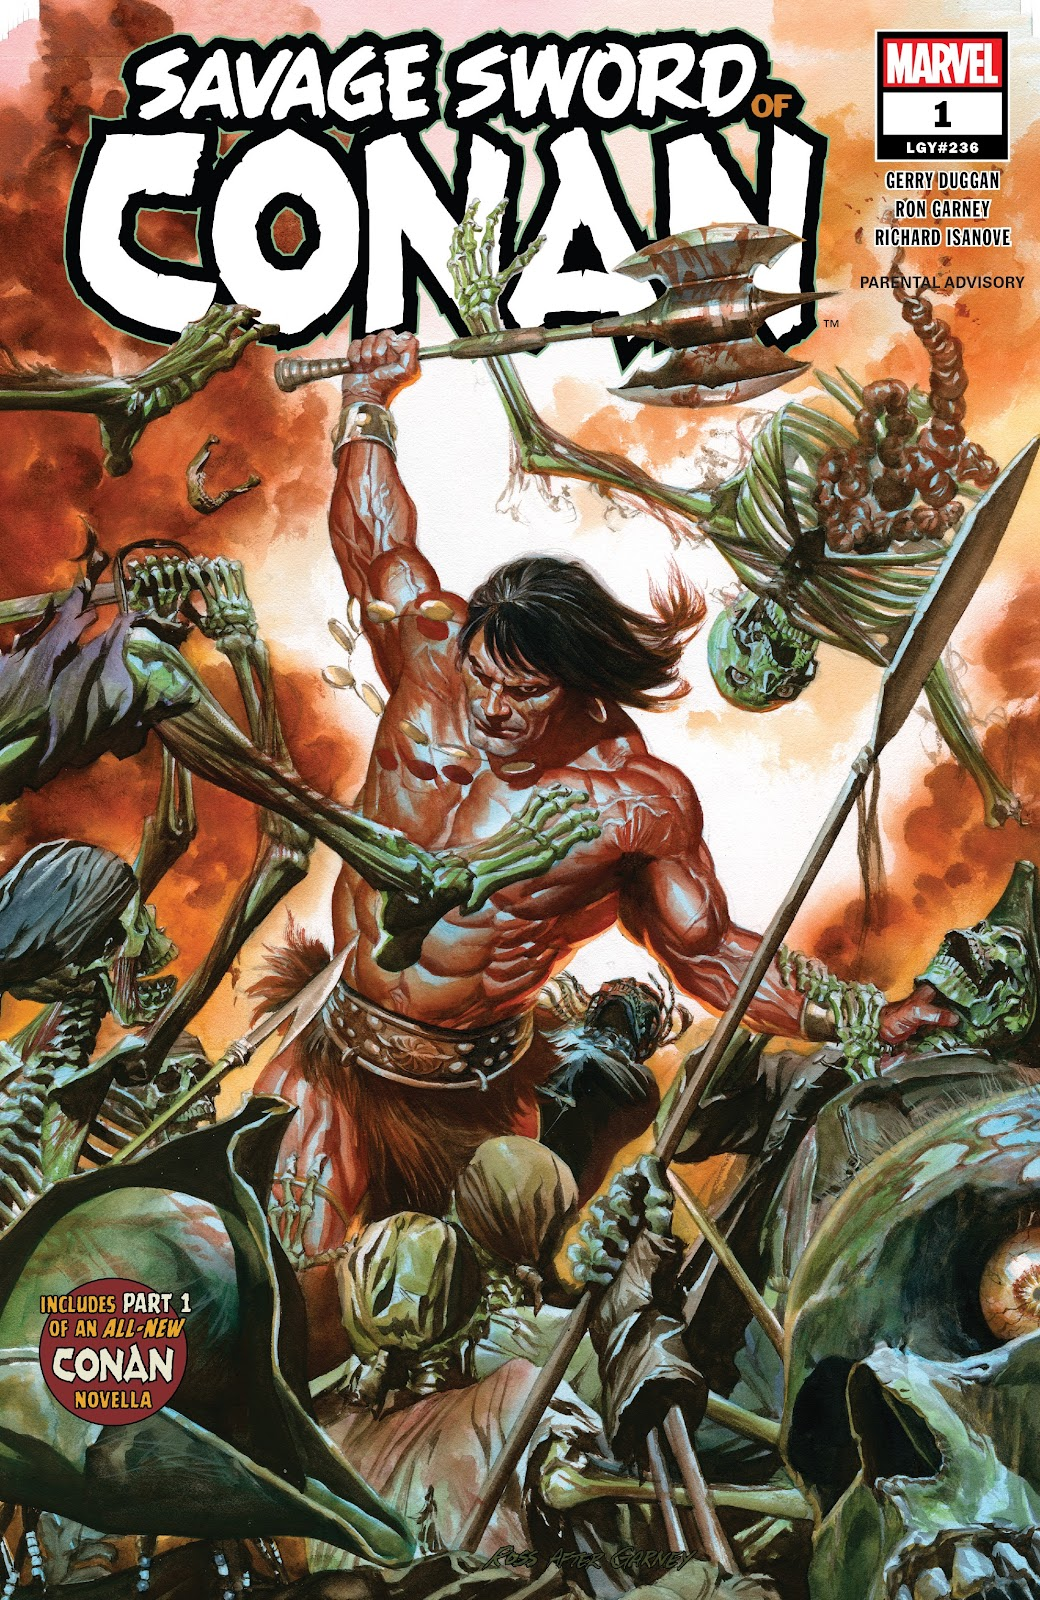 Savage Sword of Conan Best Marvel Comics of 2019